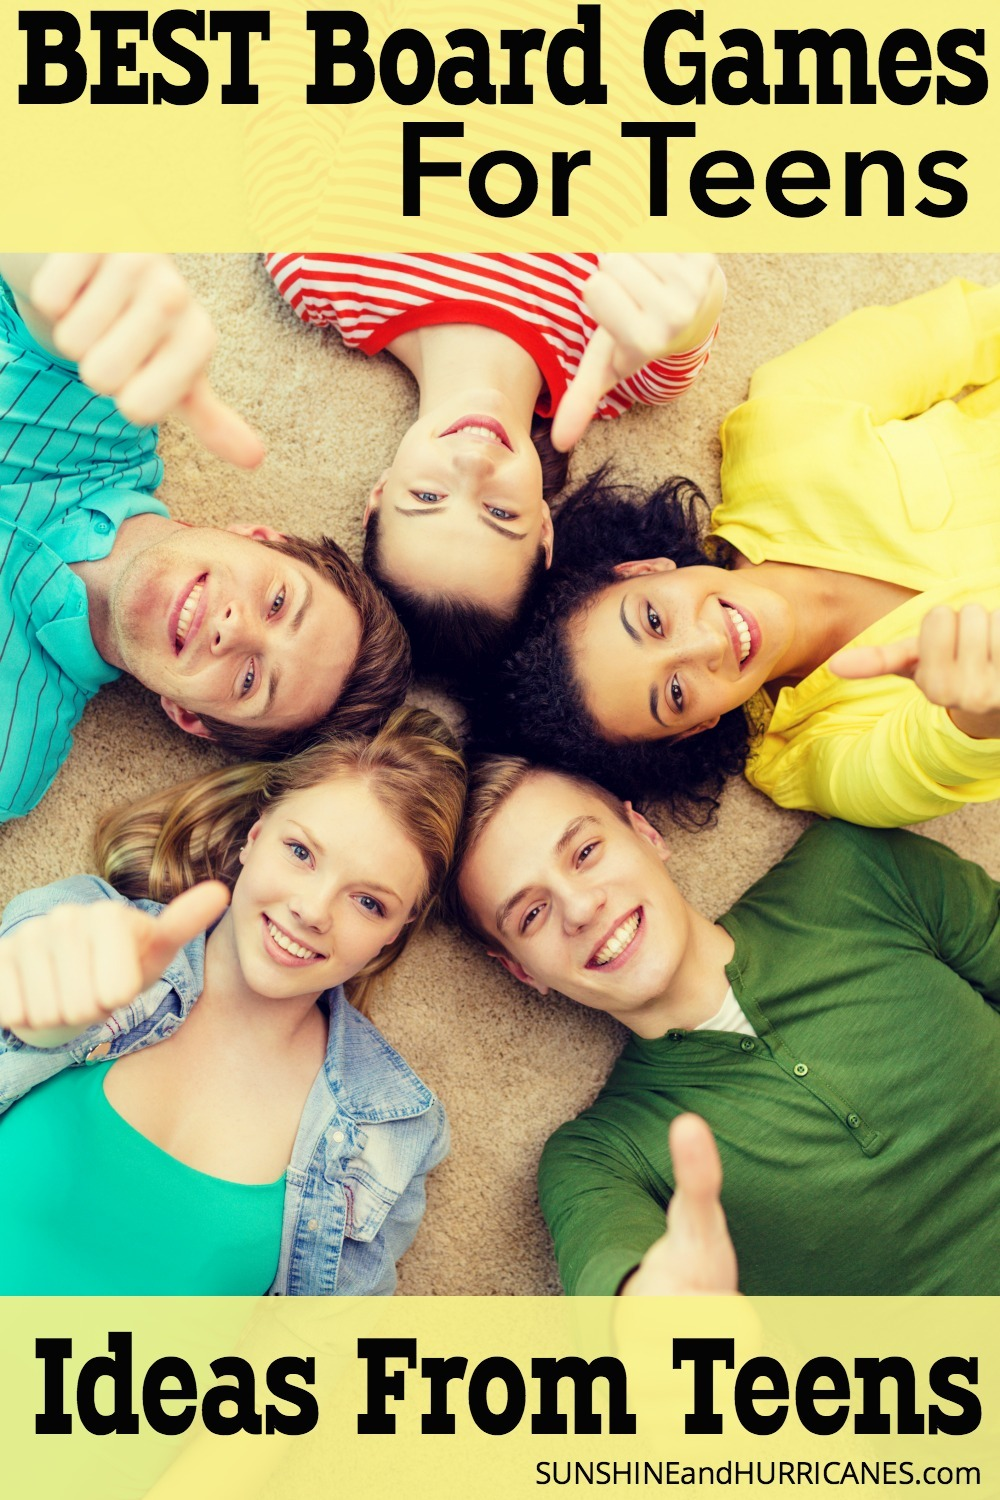 Best Board Games For Teens - Ideas from Teens